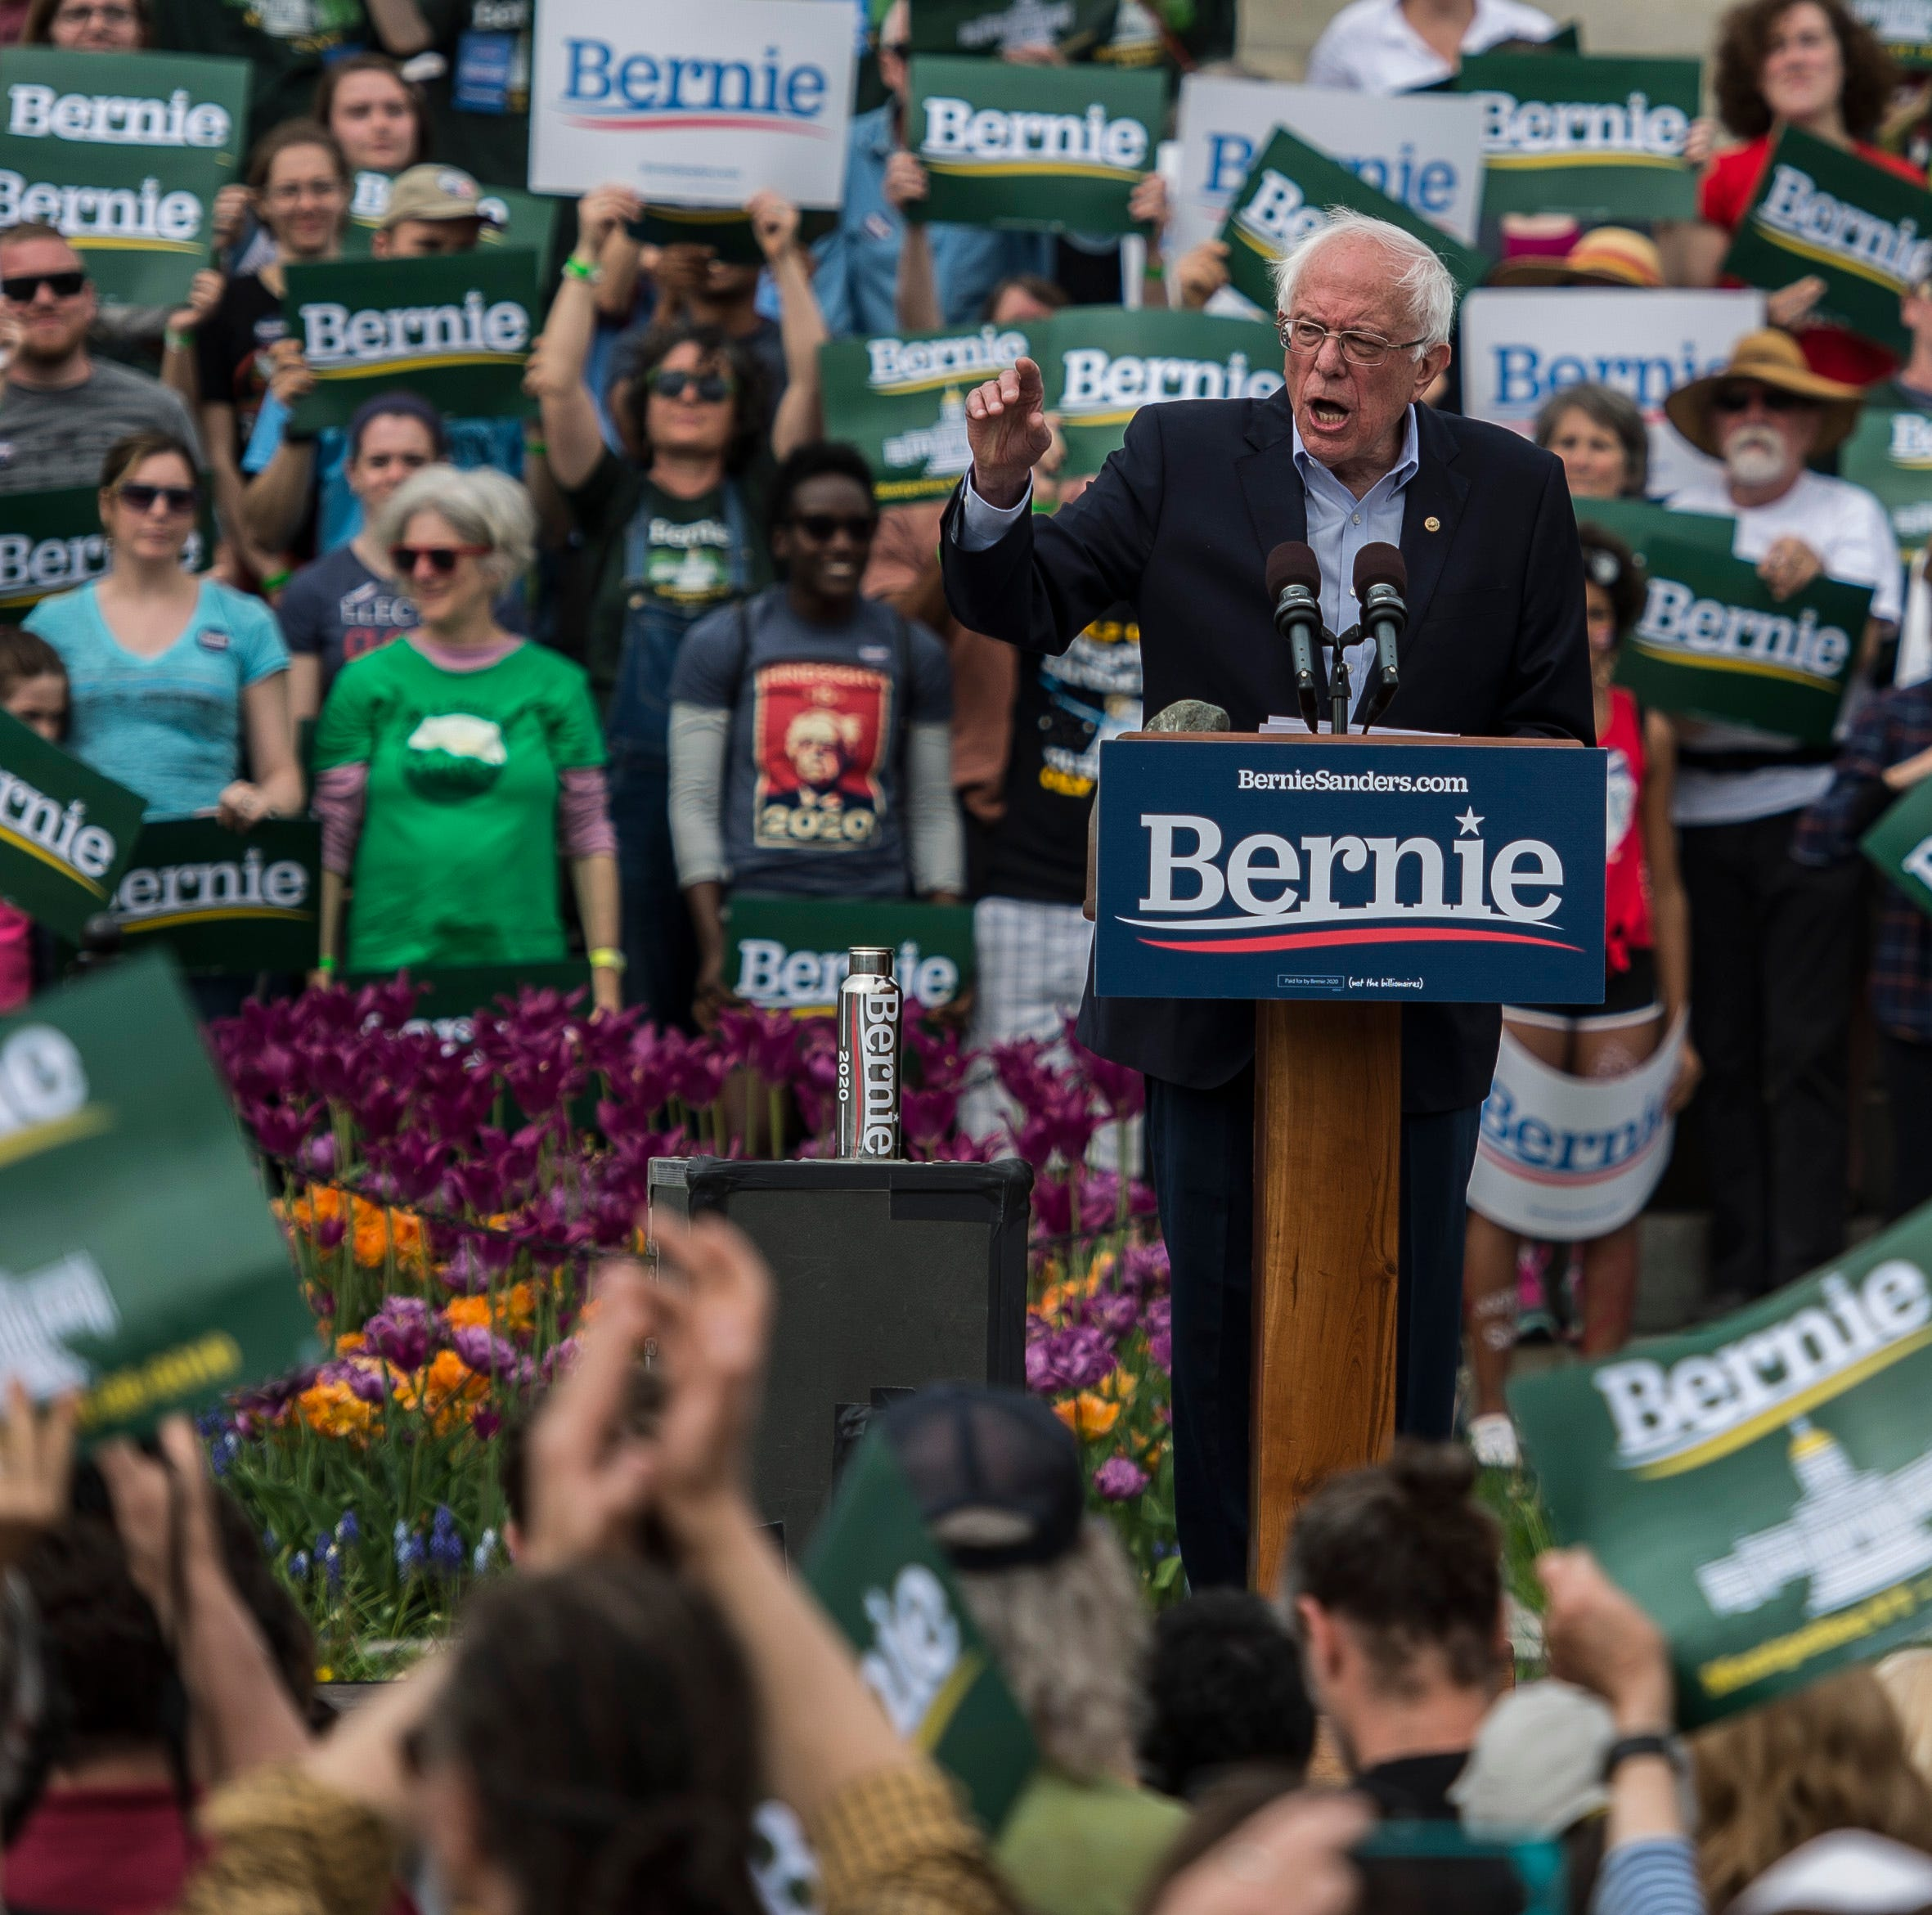 In Vermont, Bernie Sanders draws a smaller crowd to hear a bigger message